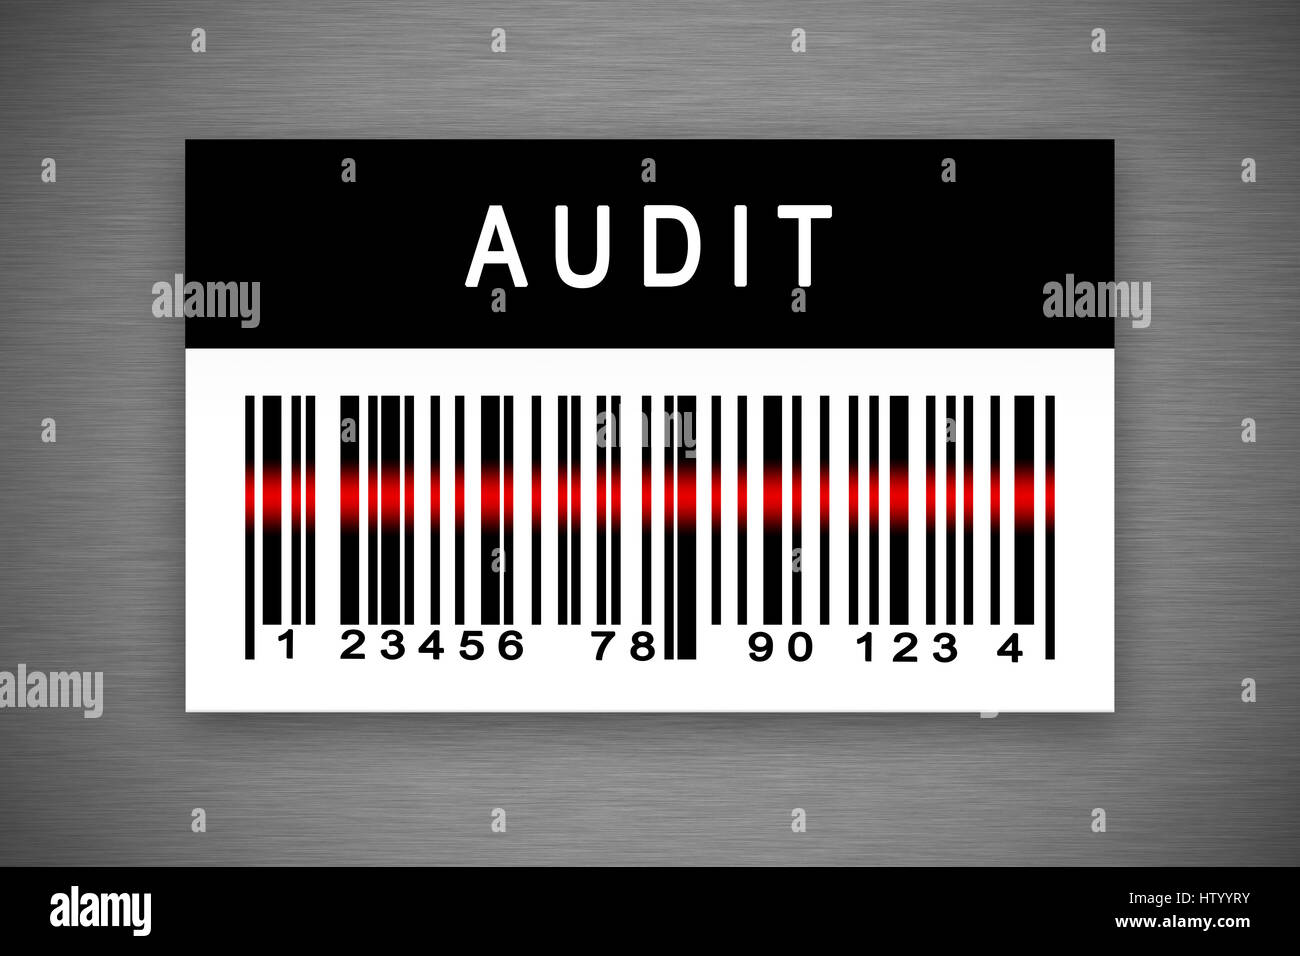 Audit barcode label with shadow on metal background - Stock Image